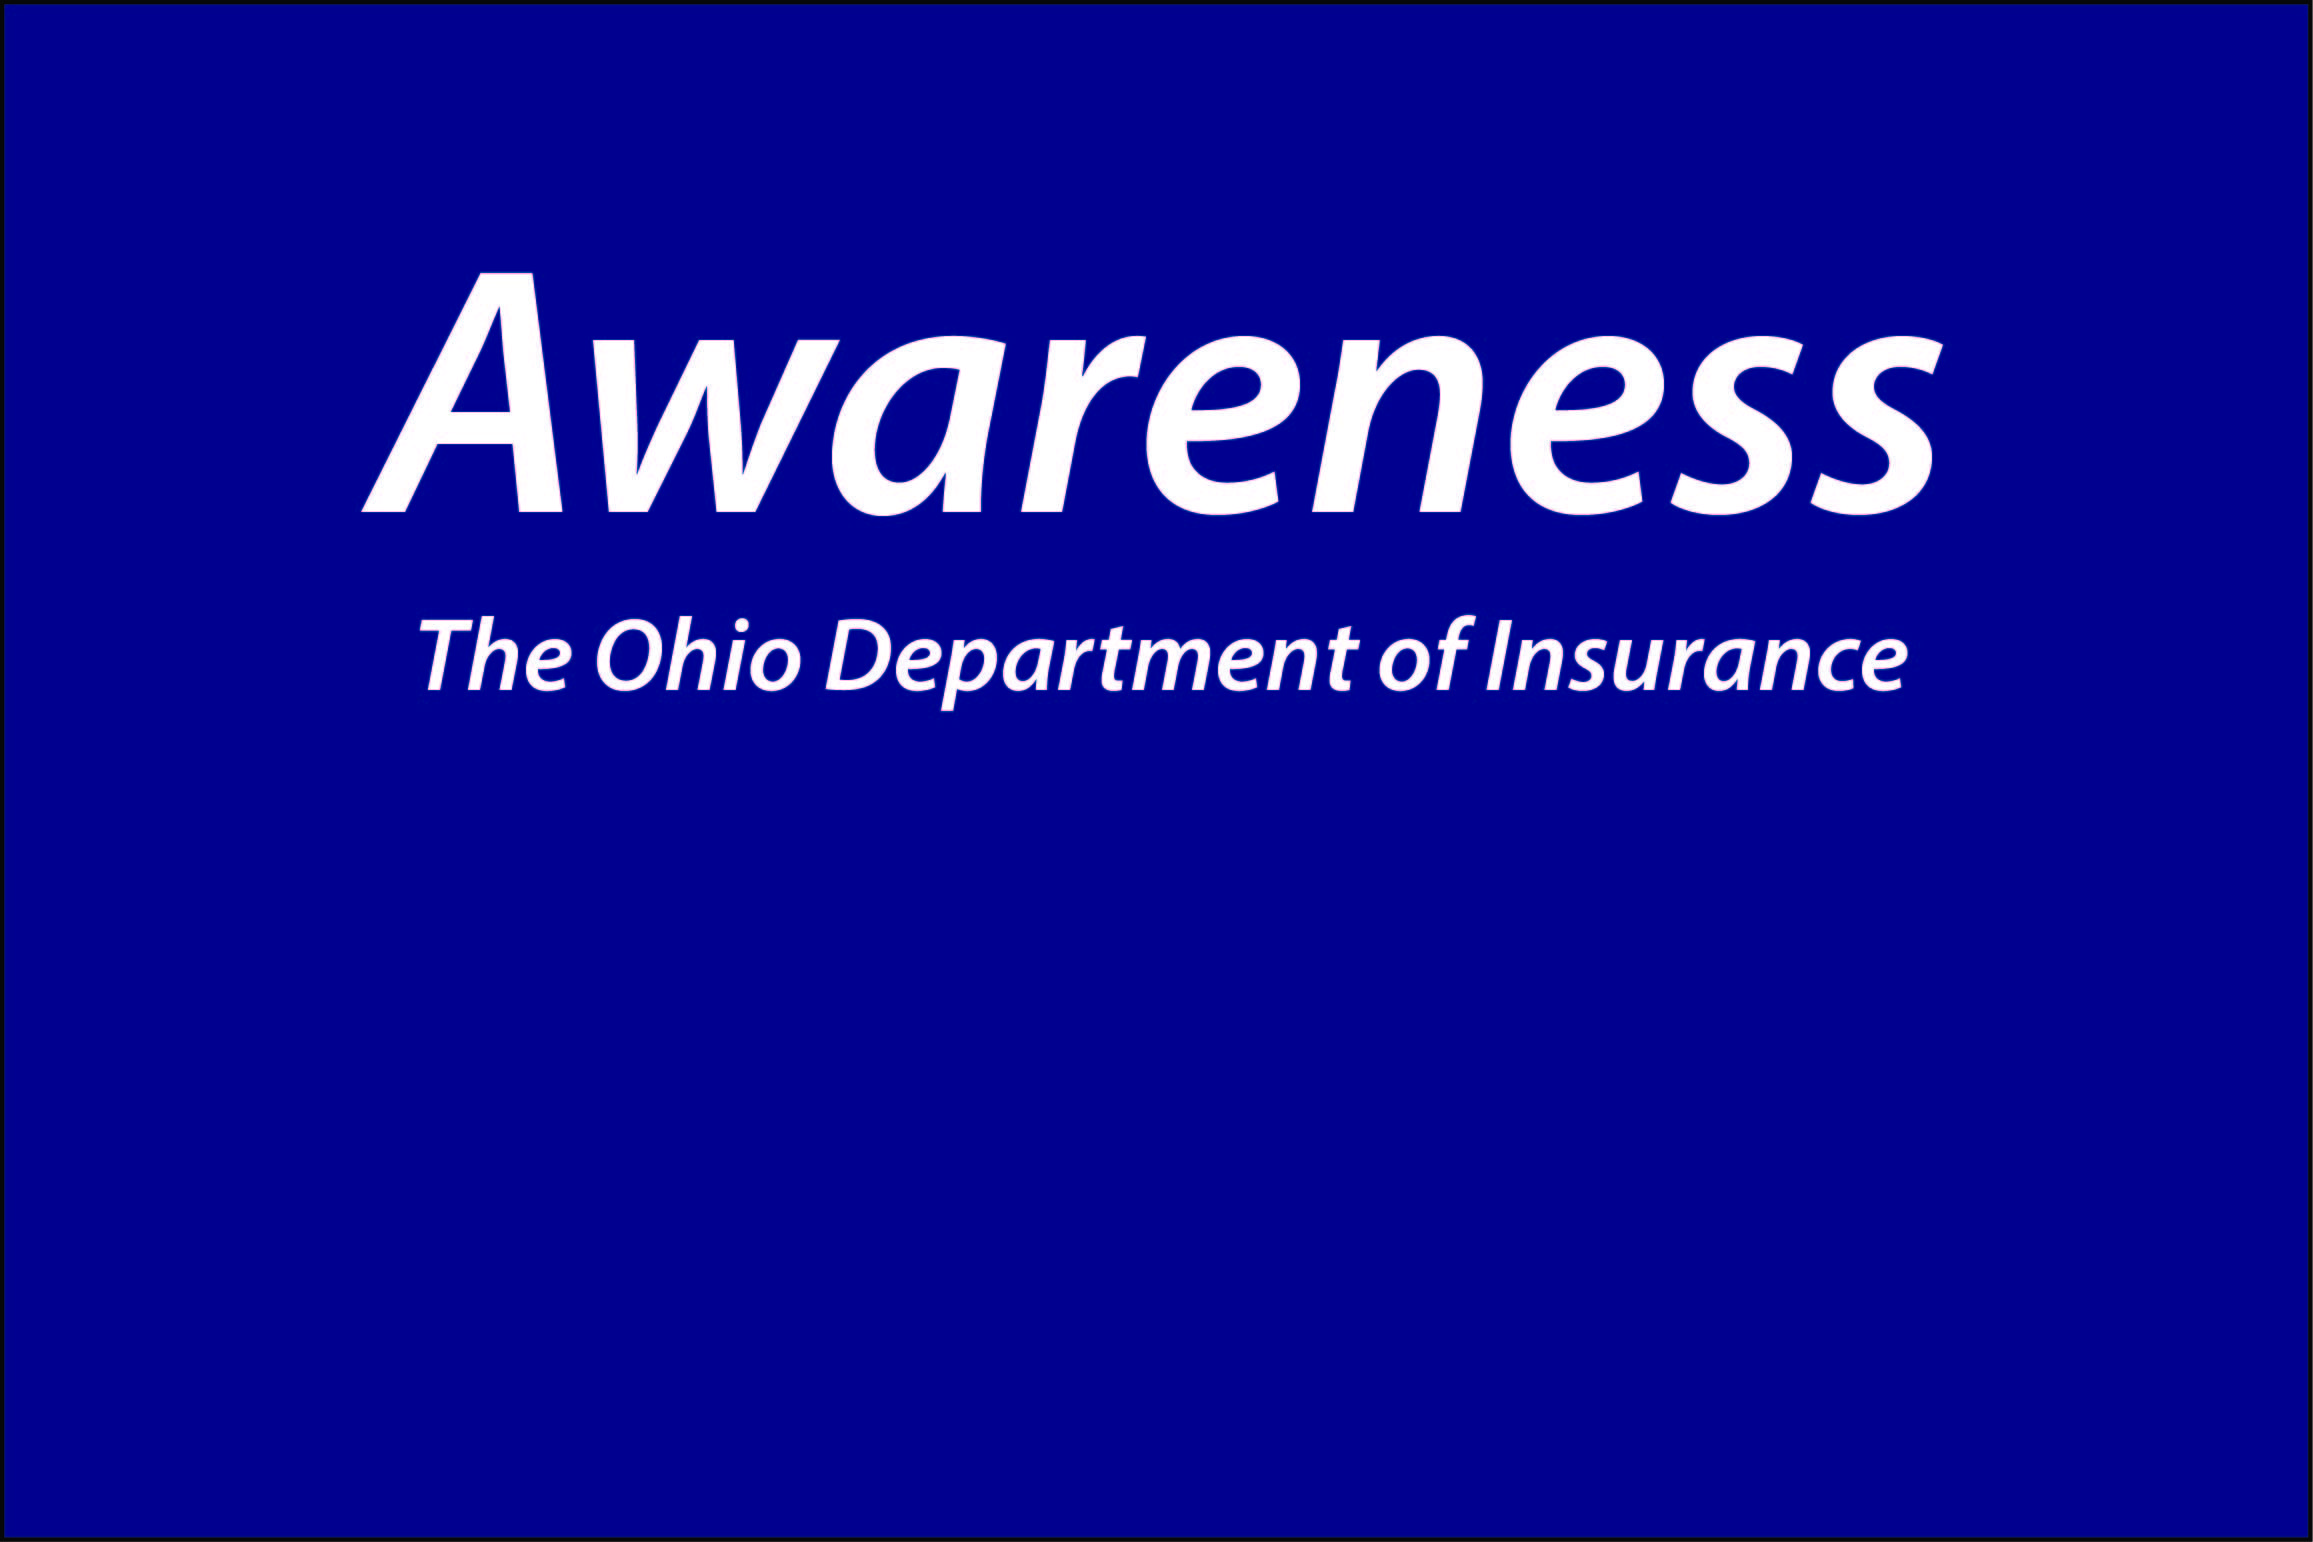 Pin by Ohio Department of Insurance on Awareness ...